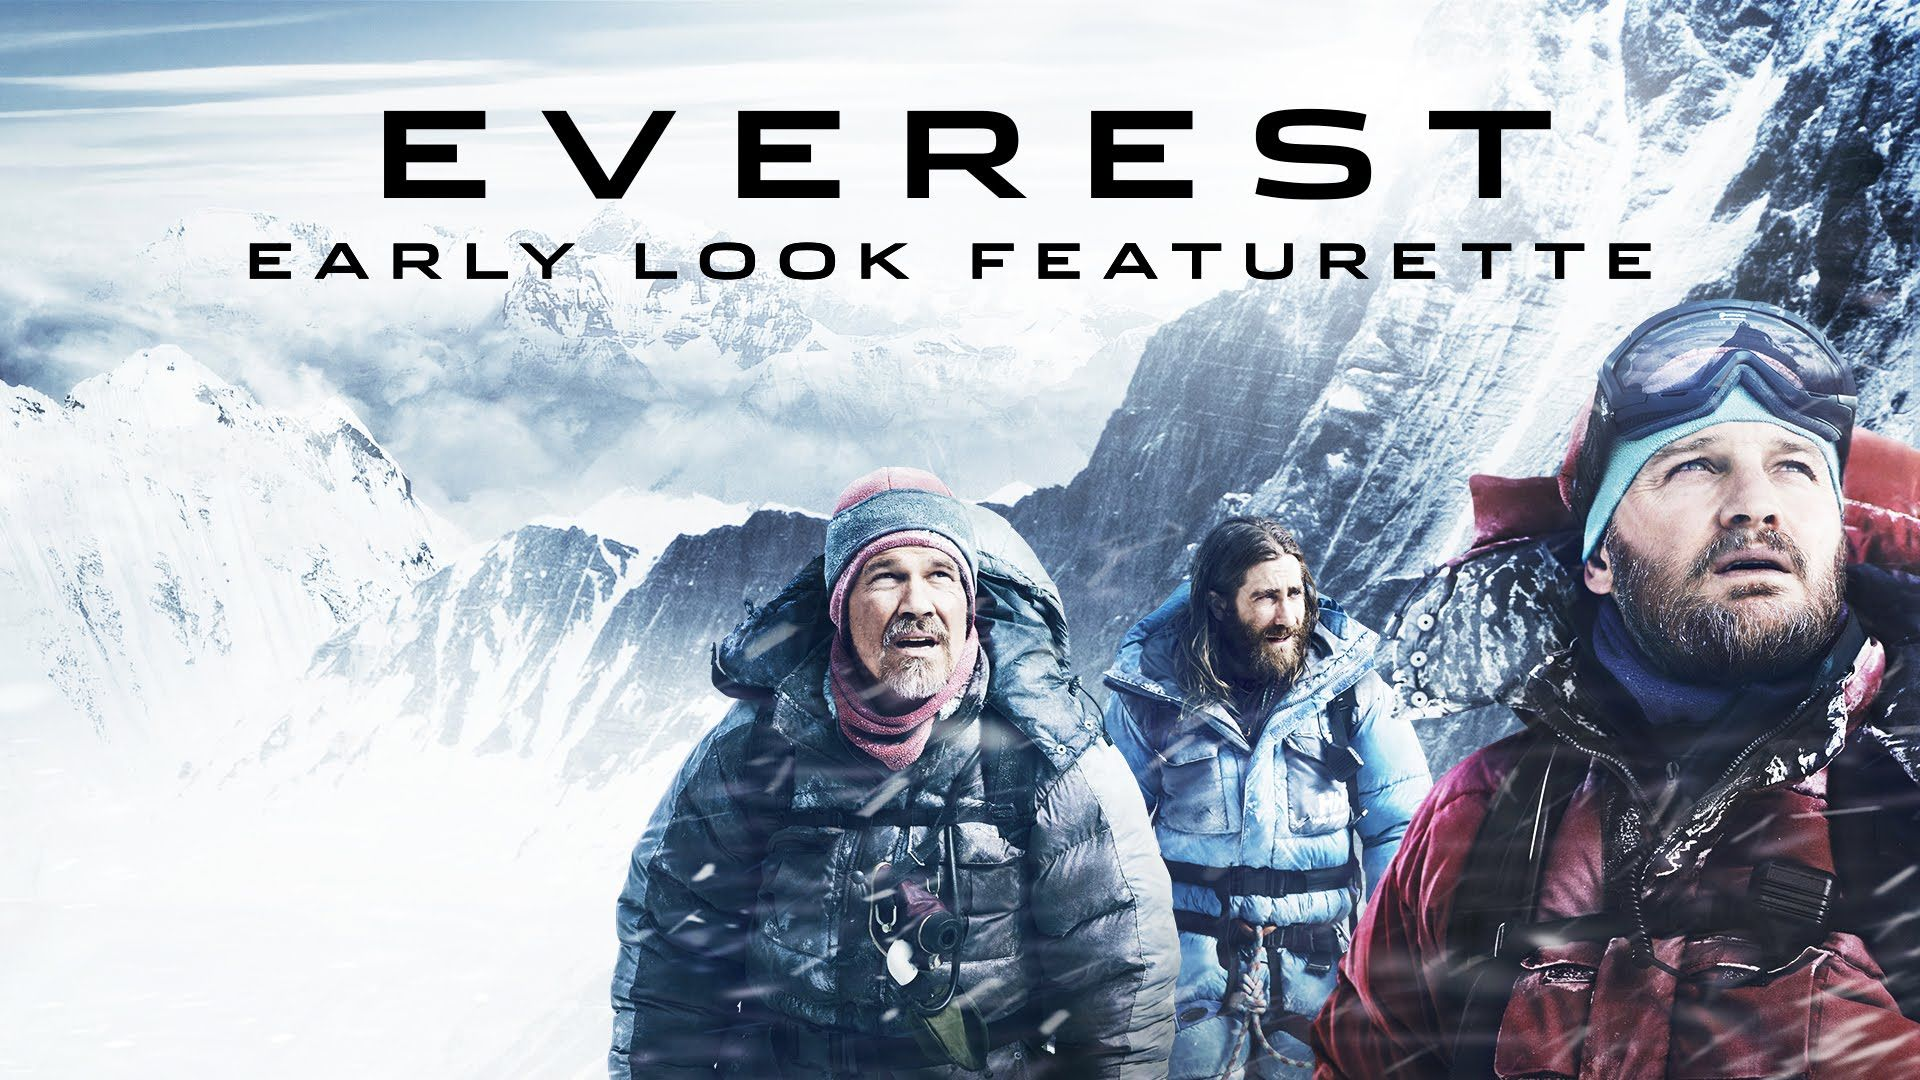 free download everest 2015 full hd movie online without spend your money watch and enjoy